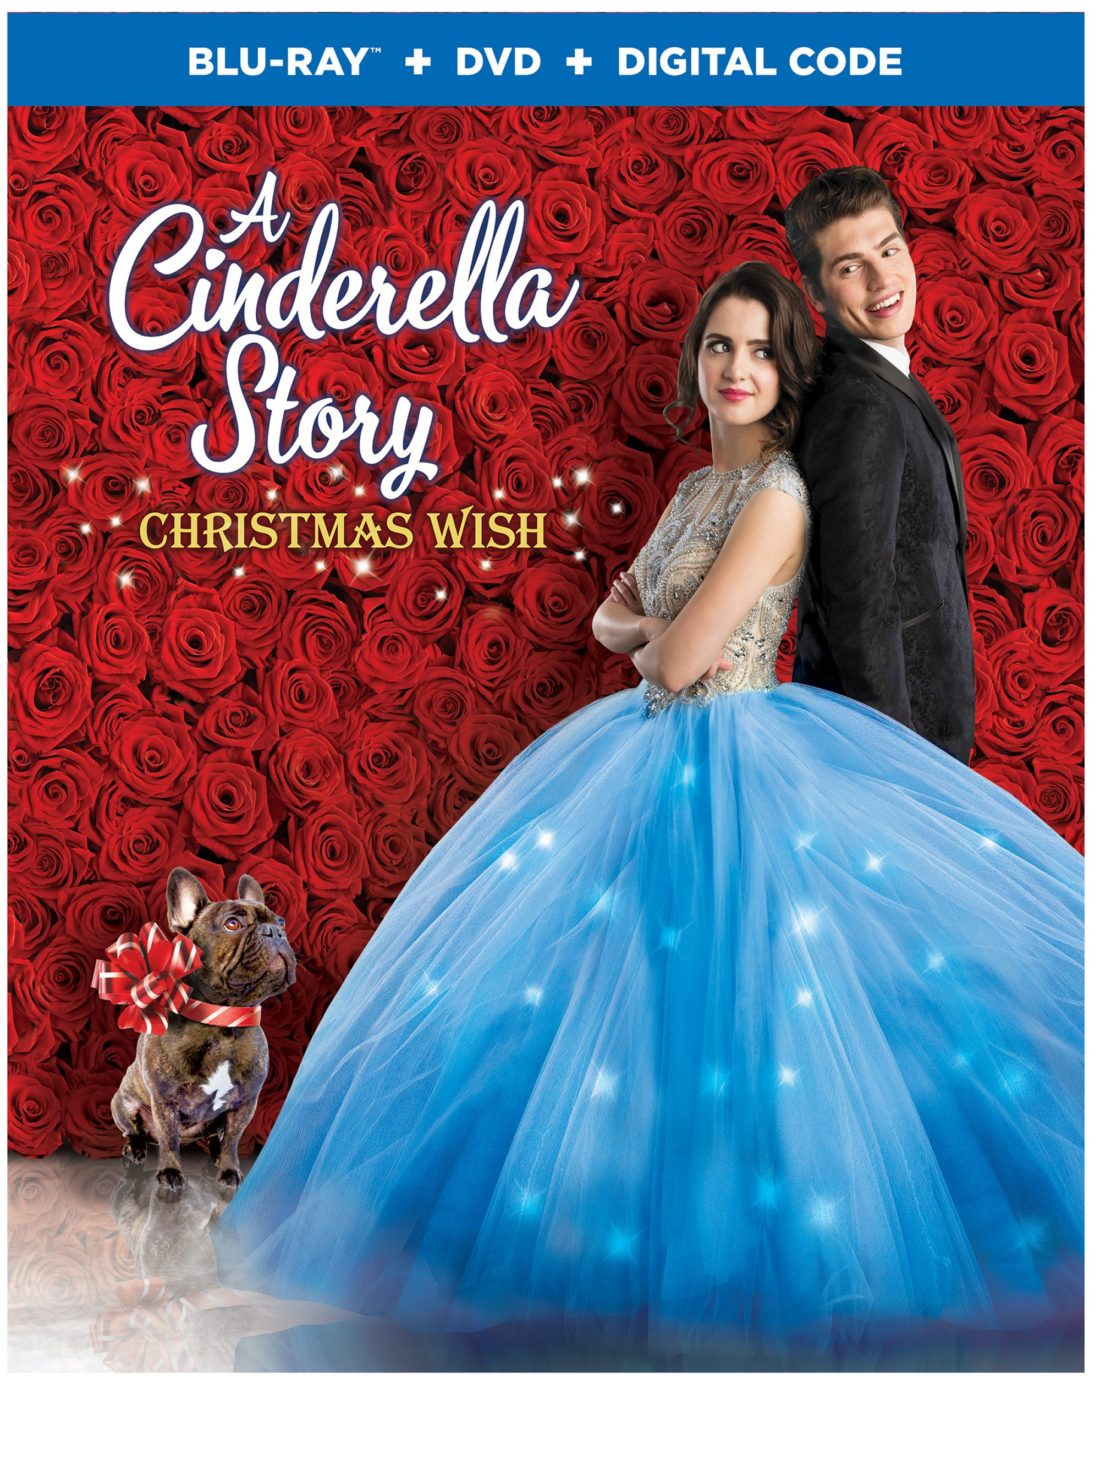 A Cinderella Story - Christmas Wish Box Art. A Cinderella Story: Christmas Wish is available on Digital beginning October 15, and on Blu-ray™ Combo Pack and DVD on October 29